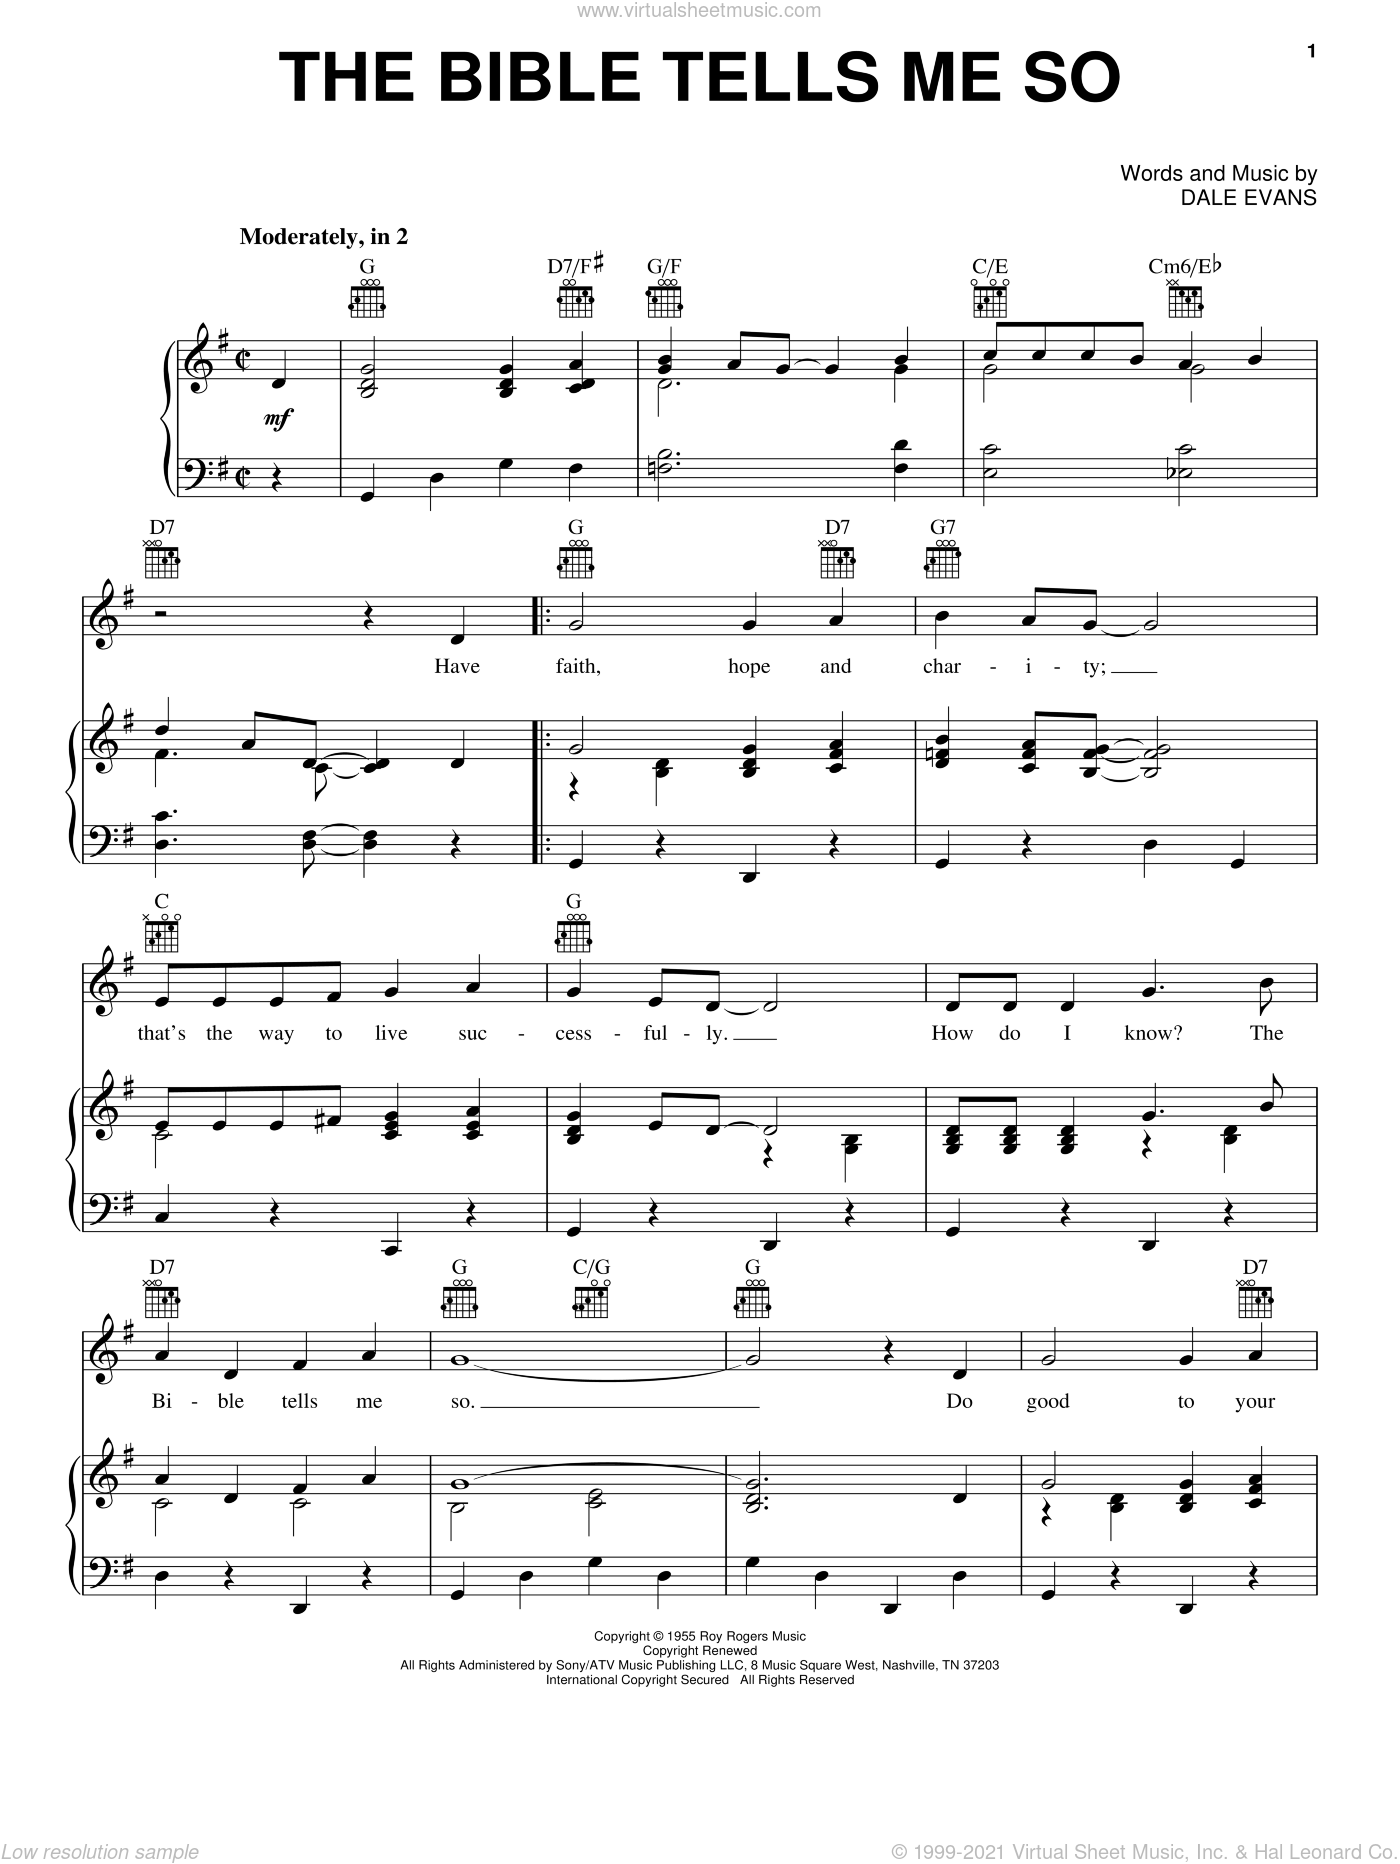 The Bible Tells Me So sheet music for voice, piano or guitar by Dale Evans